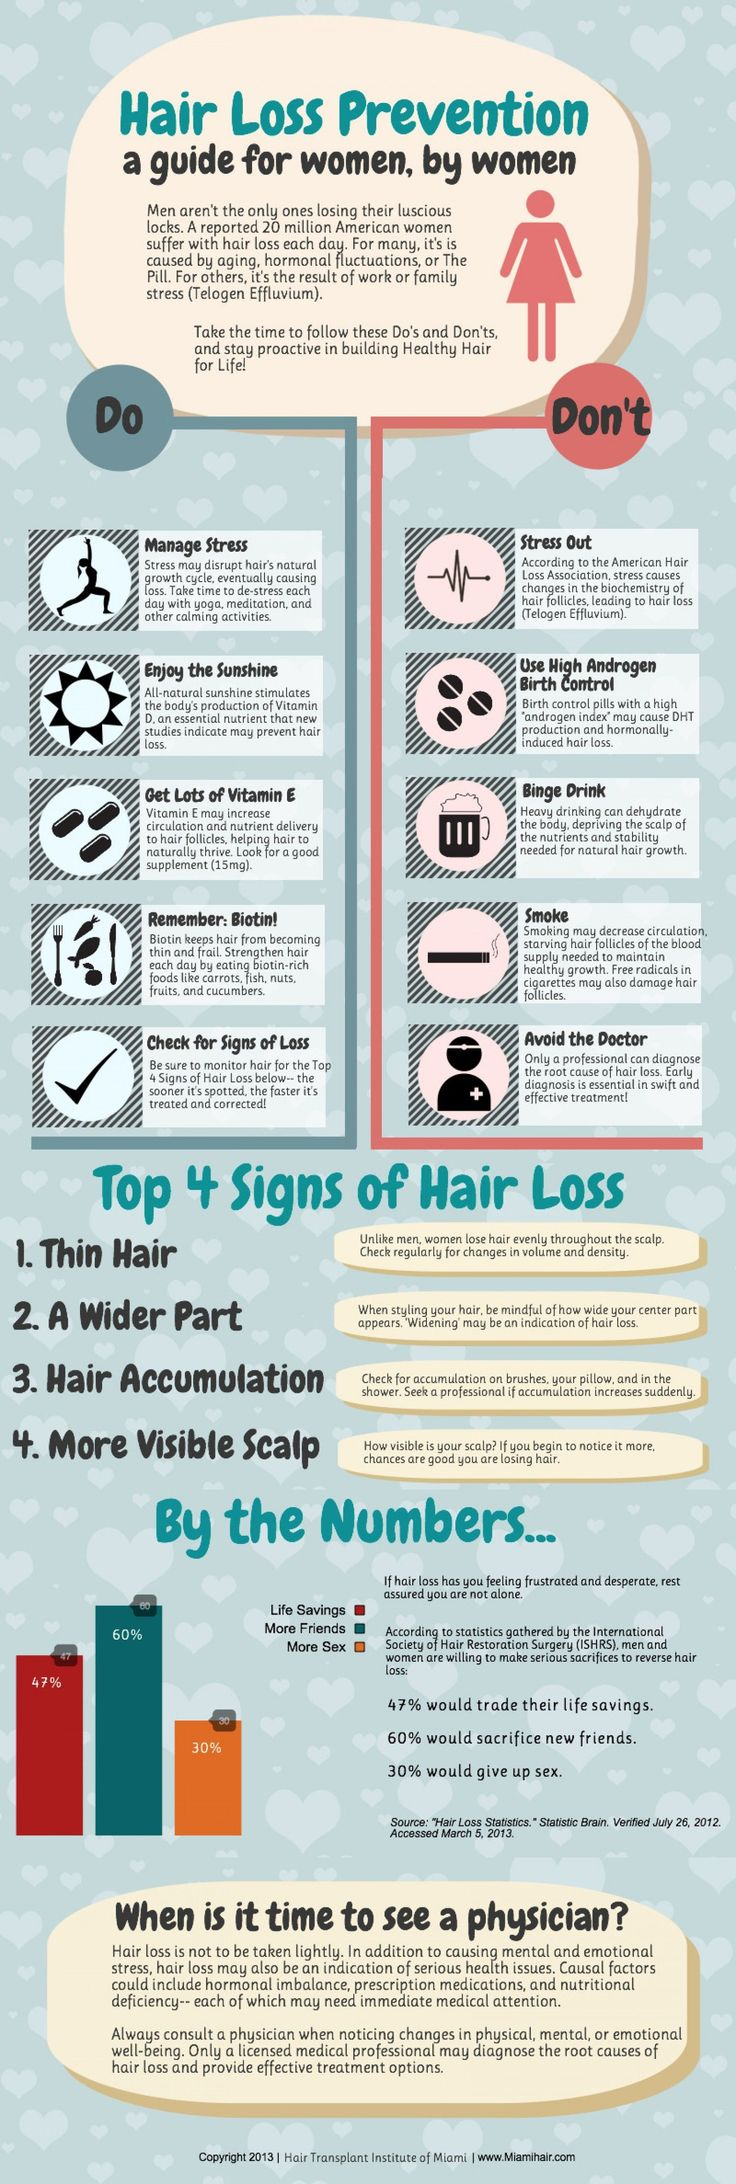 Hair Loss Prevention for Women Infographic